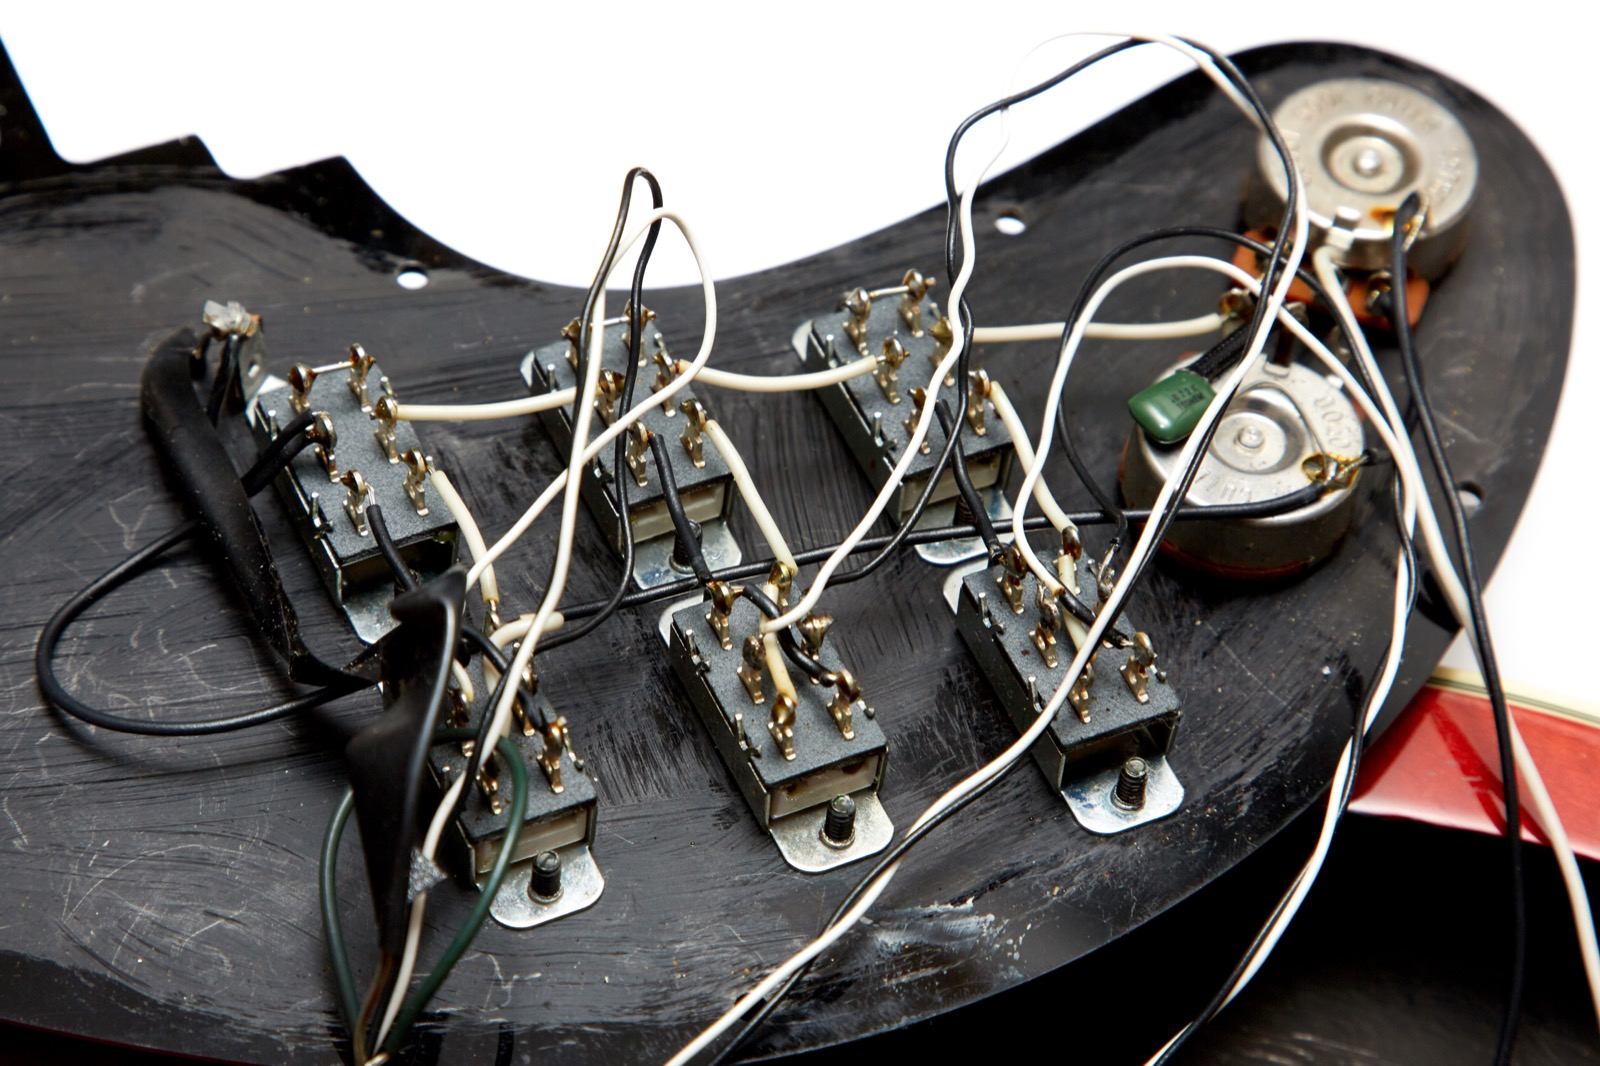 Tremendous Brian May Wiring Diagram Wiring Diagram G9 Wiring Cloud Hisonuggs Outletorg